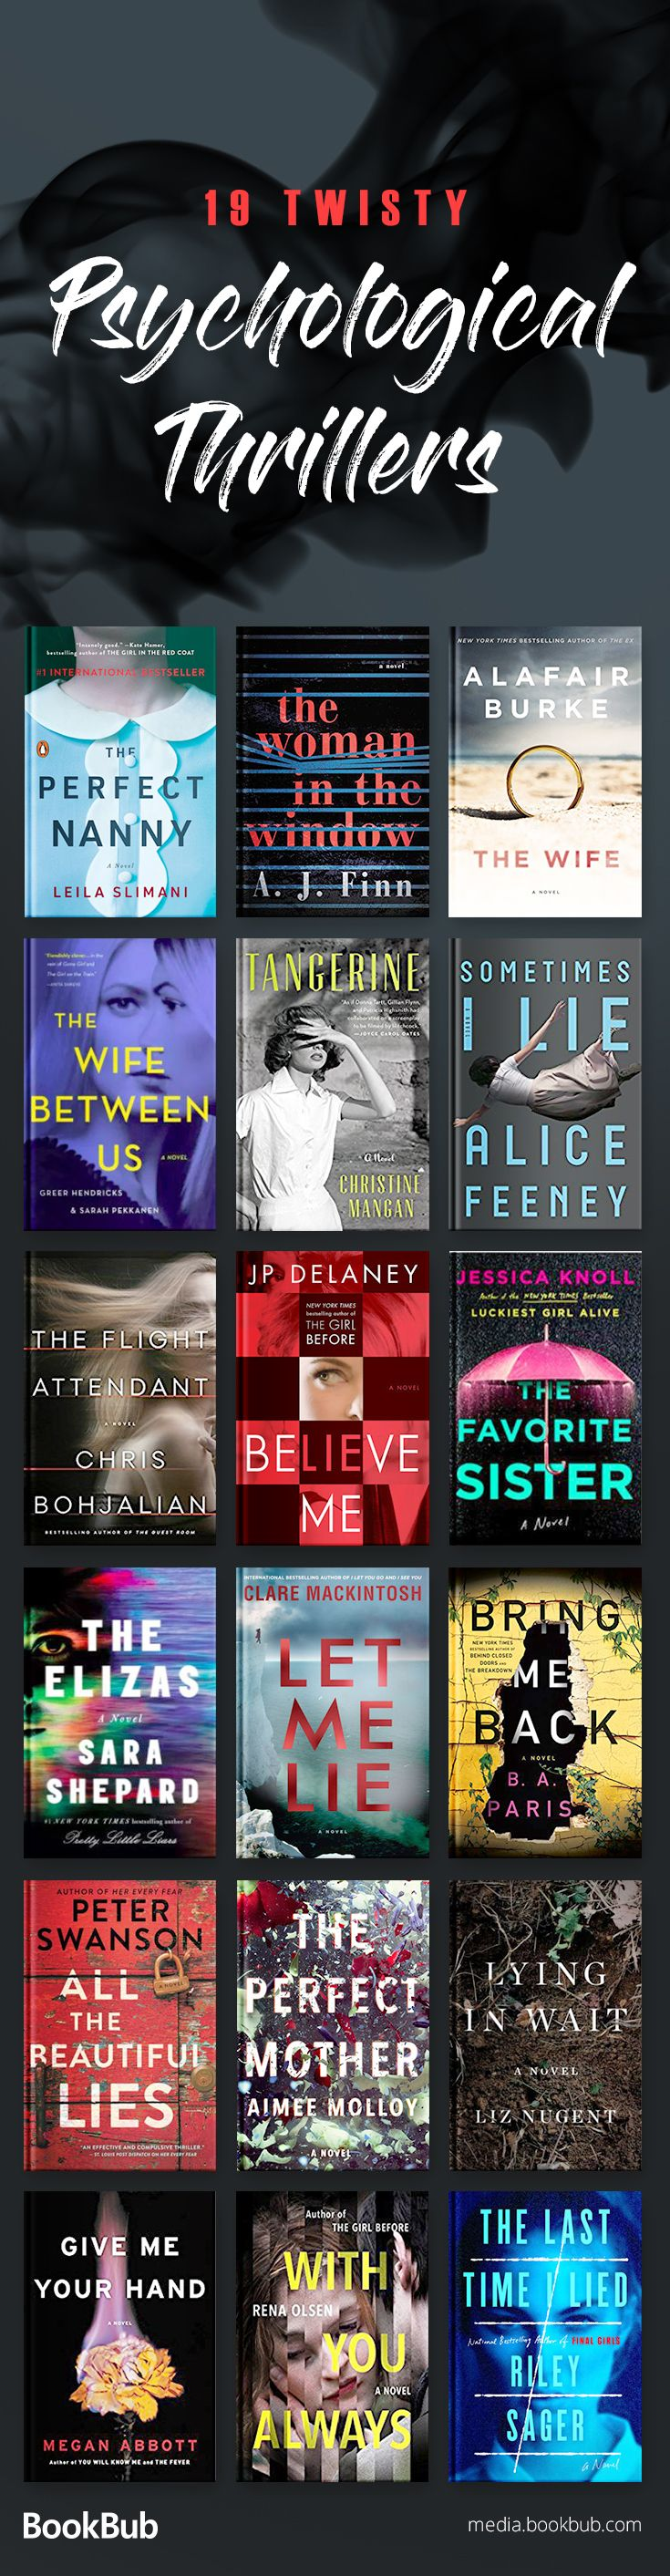 Psychological thrillers and thriller and mystery books you won't want to miss, including twisty novels about murder, domestic suspense, and more. Add these to your 2018 reading list!